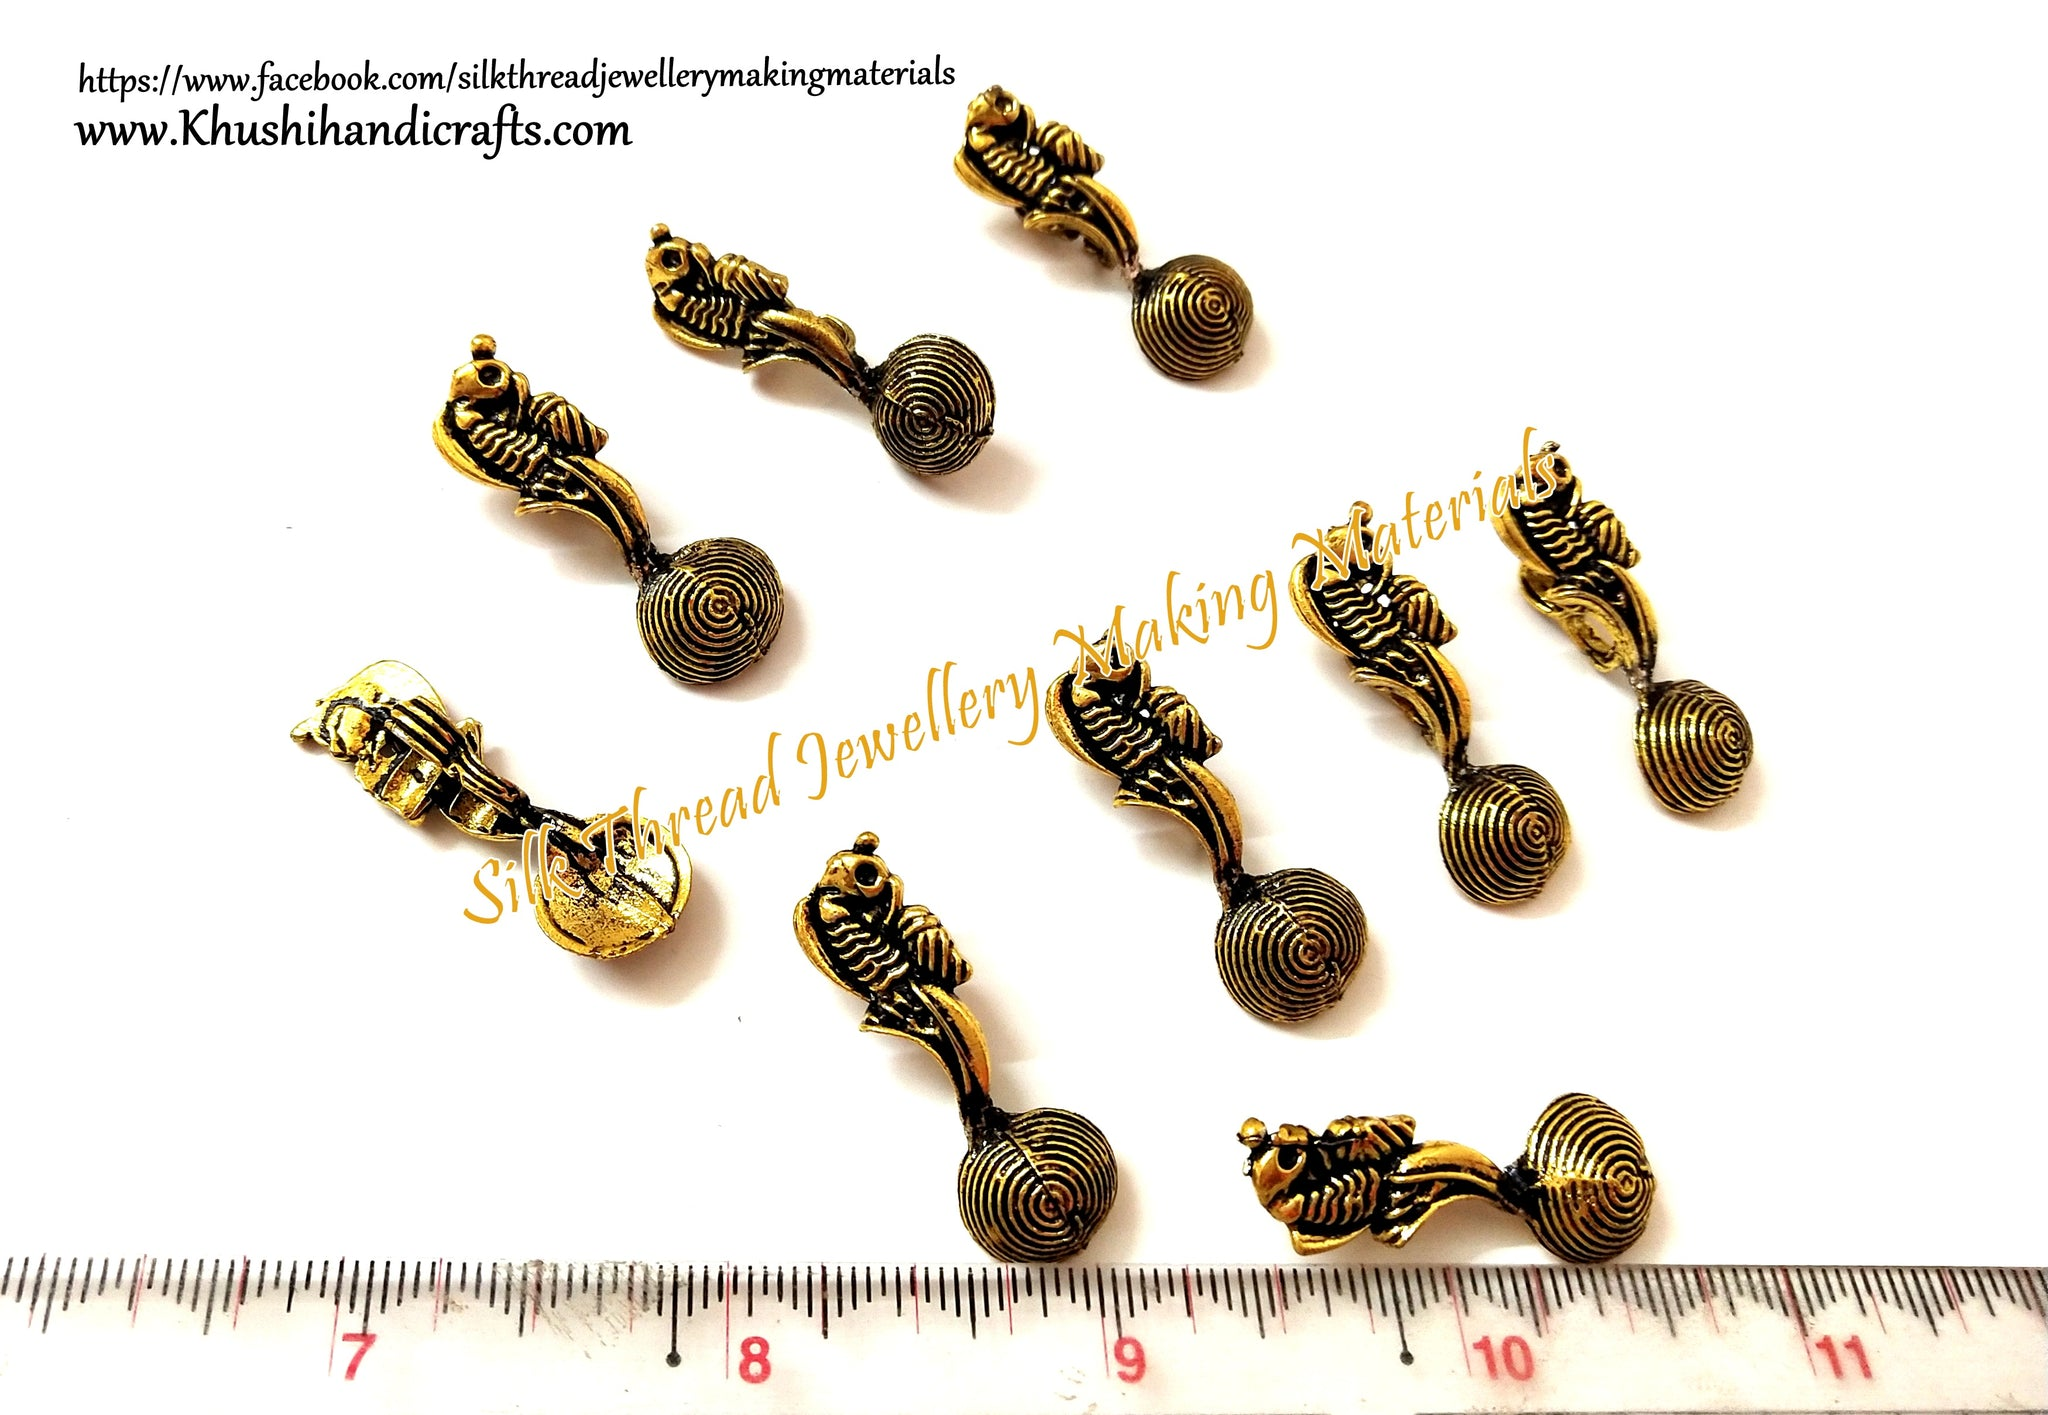 Beads for Oxidised Jewellery